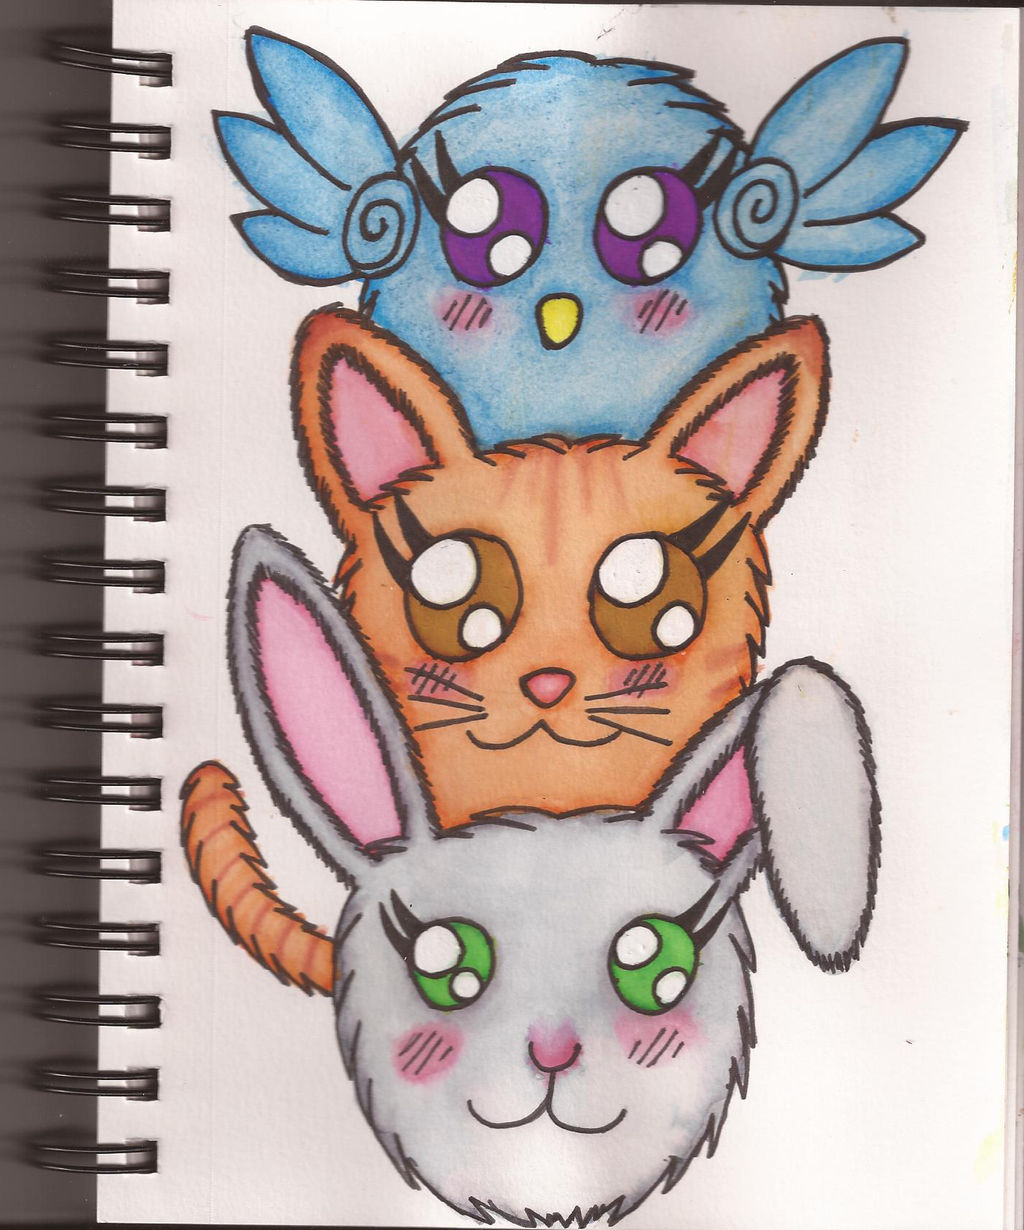 Watercolour Notebook #10: Fluff Tower by Greenpolarbear47